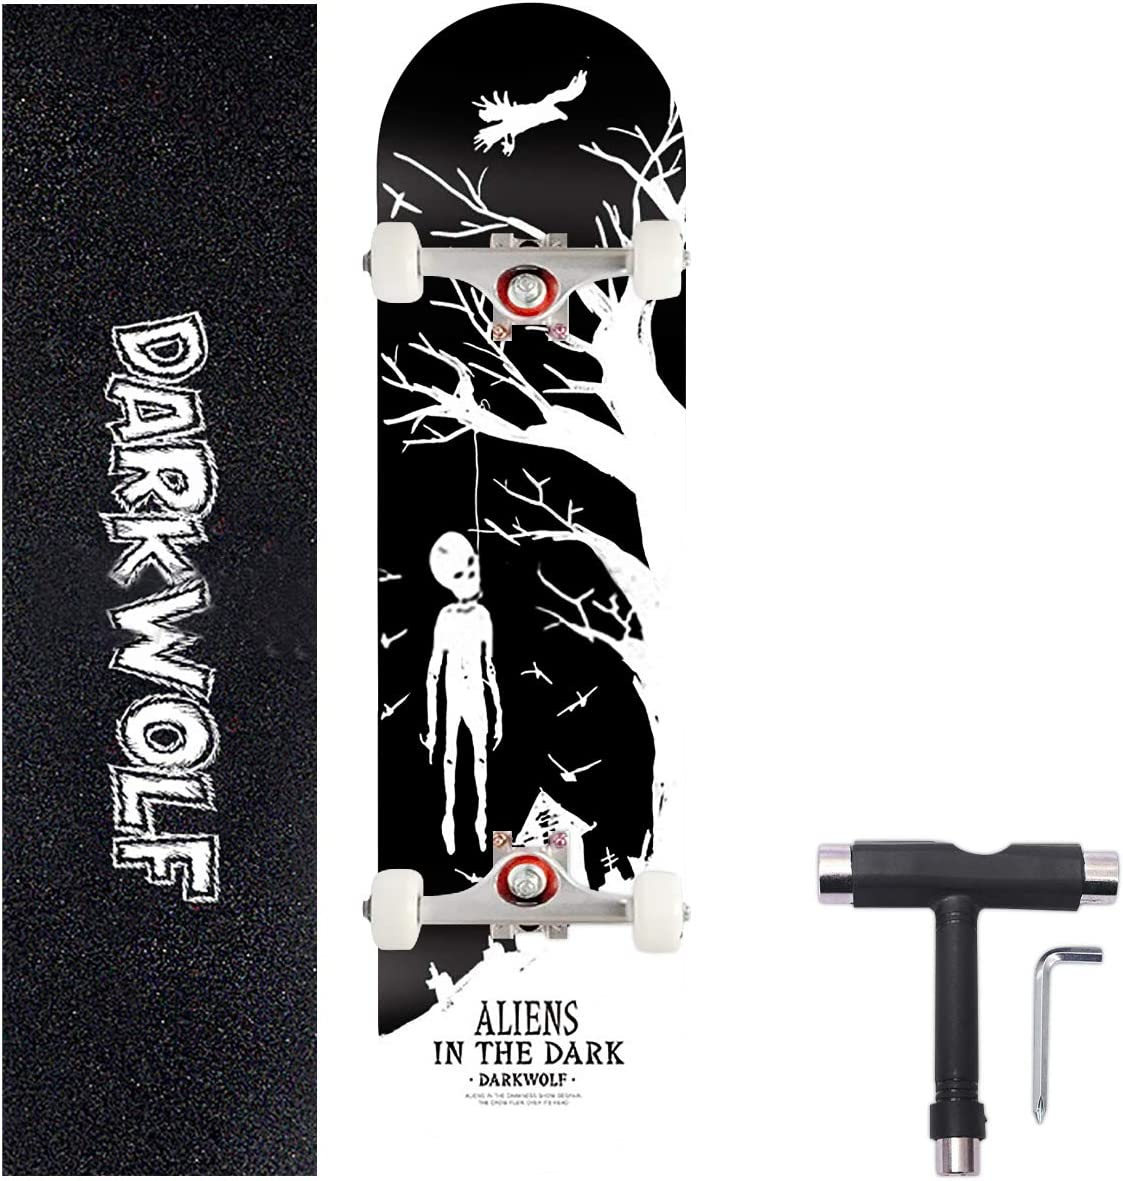 OLYSPM Skateboards Sales of SALE items from new shop works 31x8 inch fully assembled skateboard complete